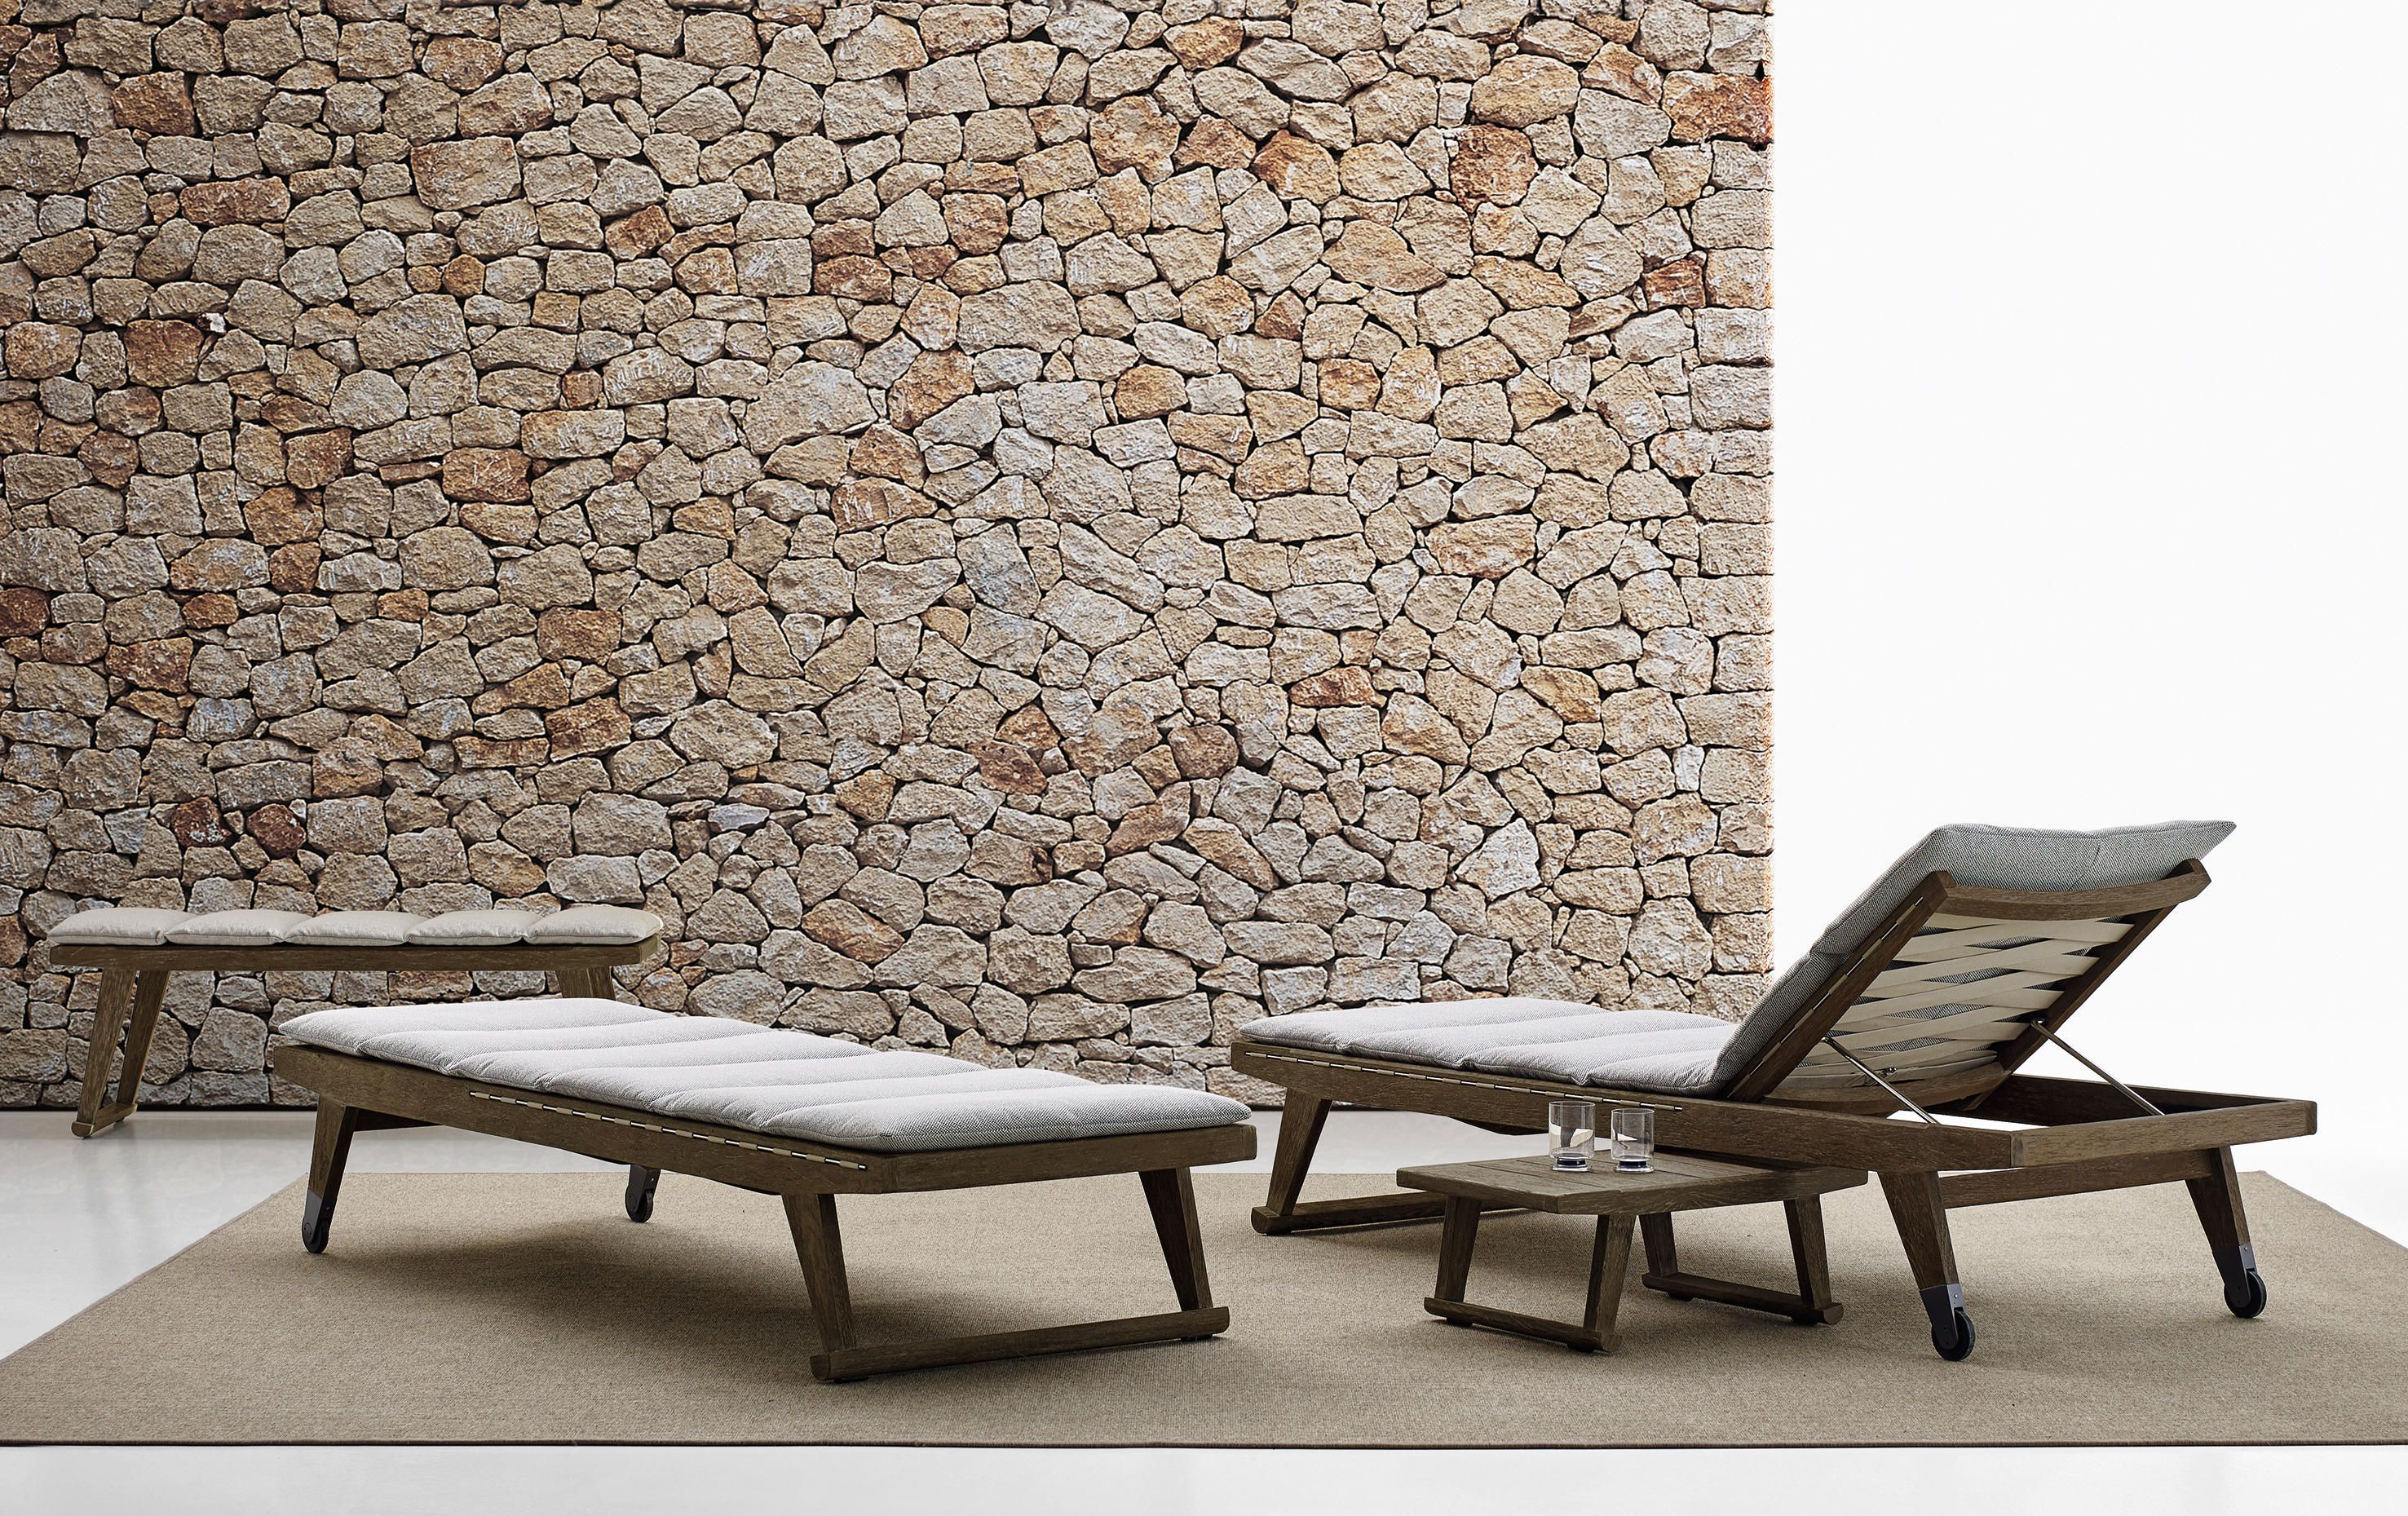 Gio sofa garden sofas from b b italia architonic for Chaises longues piscines